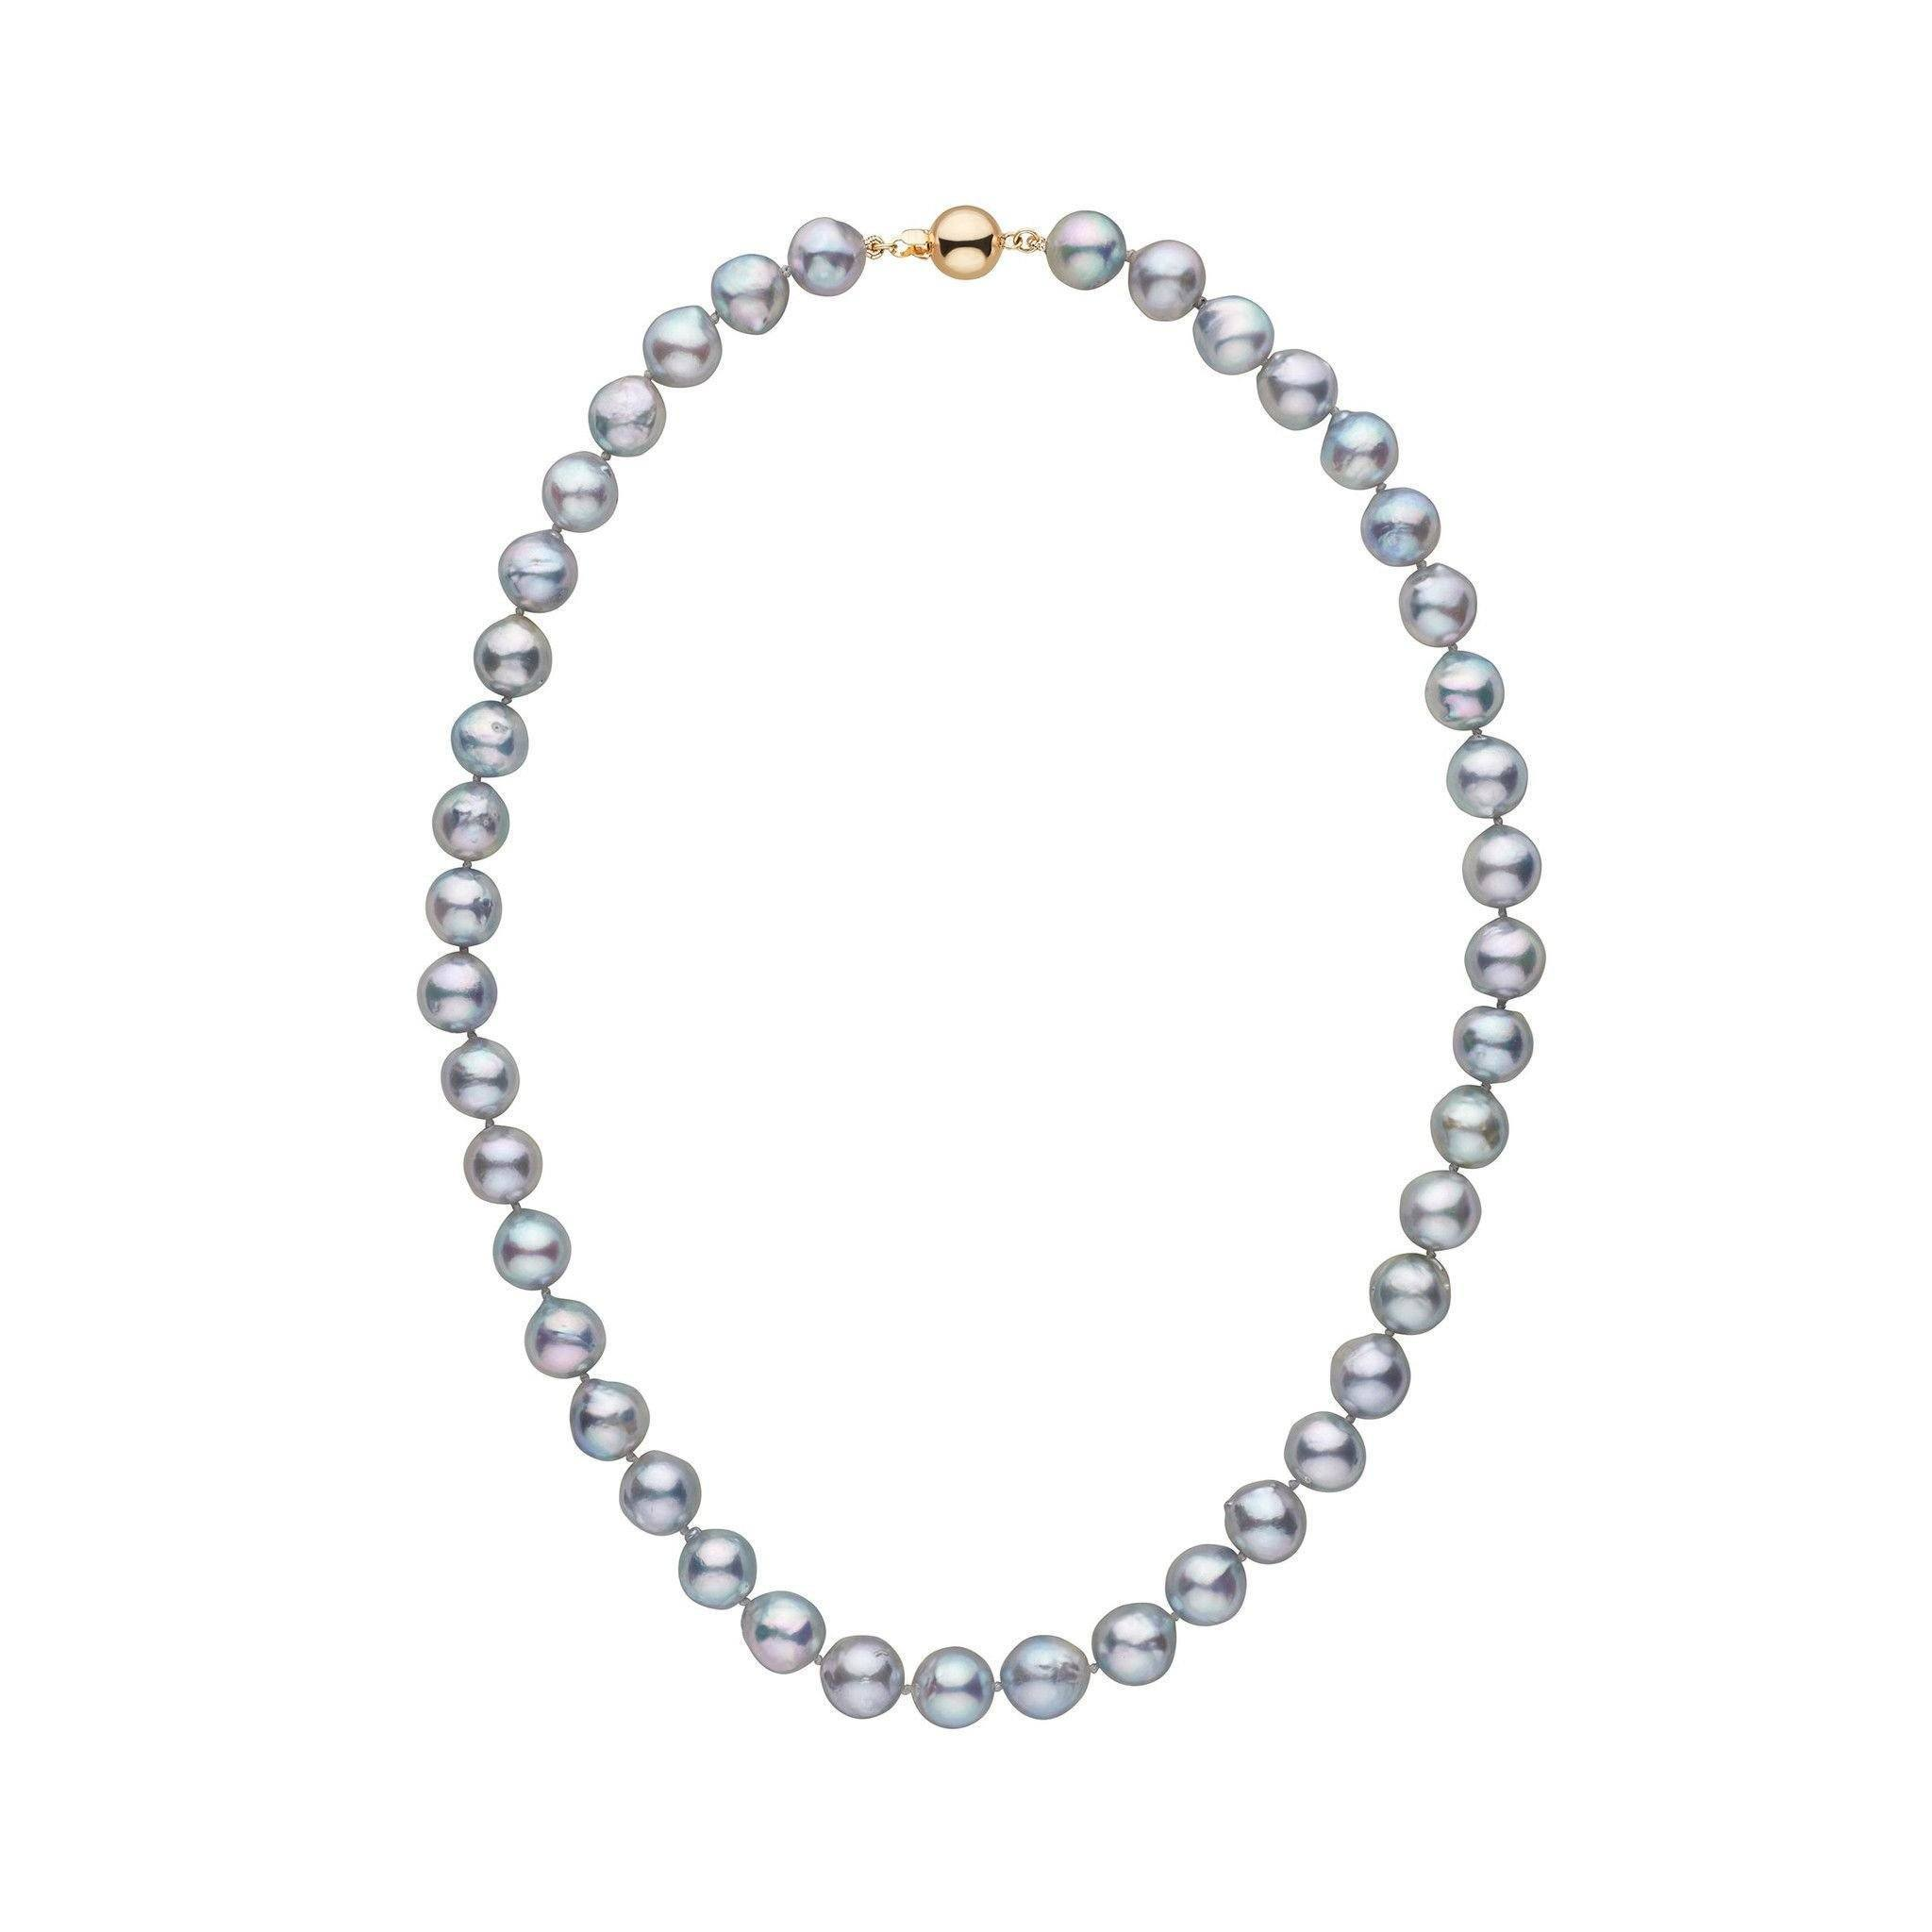 8.5-9.0 mm 16 Inch Silver-Blue Akoya Baroque Pearl Necklace